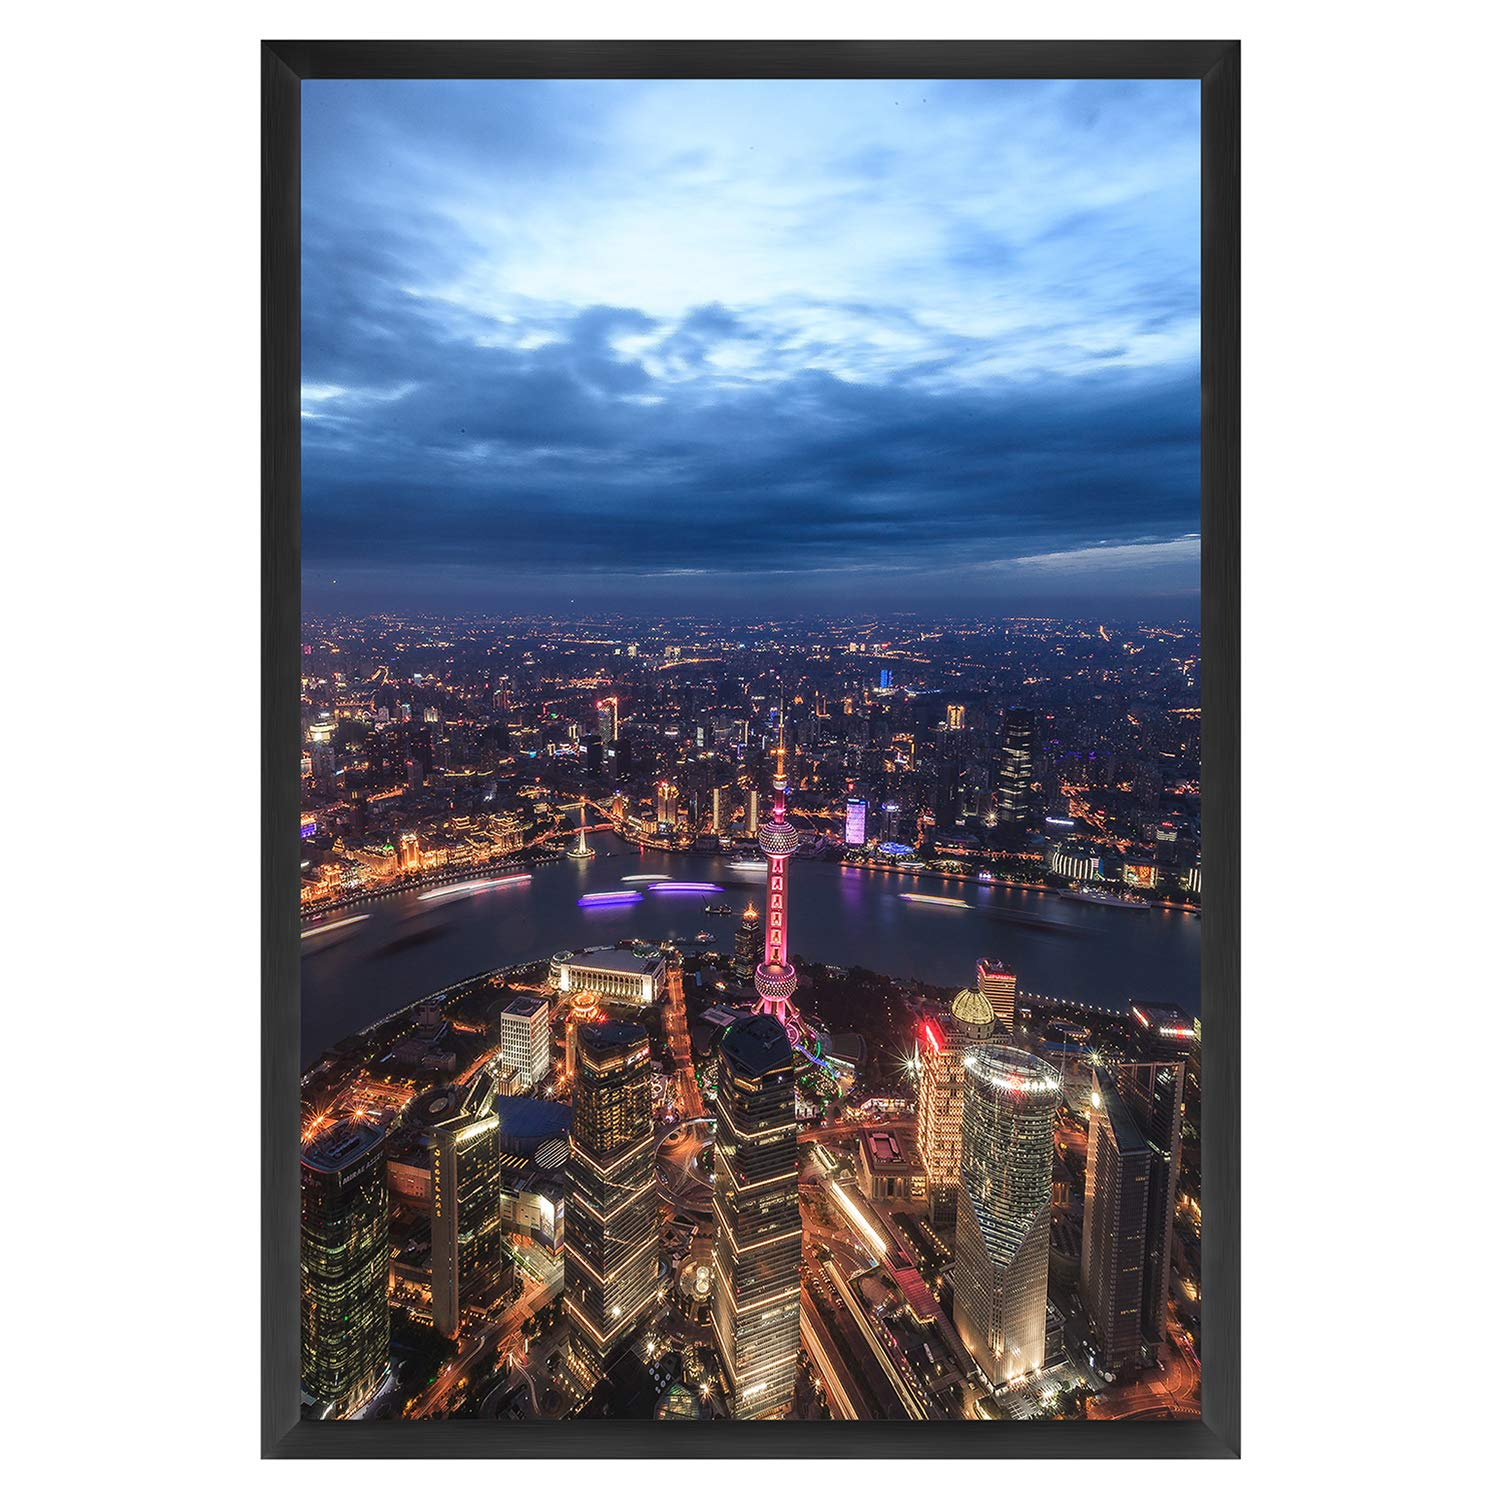 ONE WALL 27x40 Inch Poster Frame, Black Aluminum Movie Poster Frame for Photo Picture Poster Artwork Wall Hanging - Wall Mounting Hardware Included